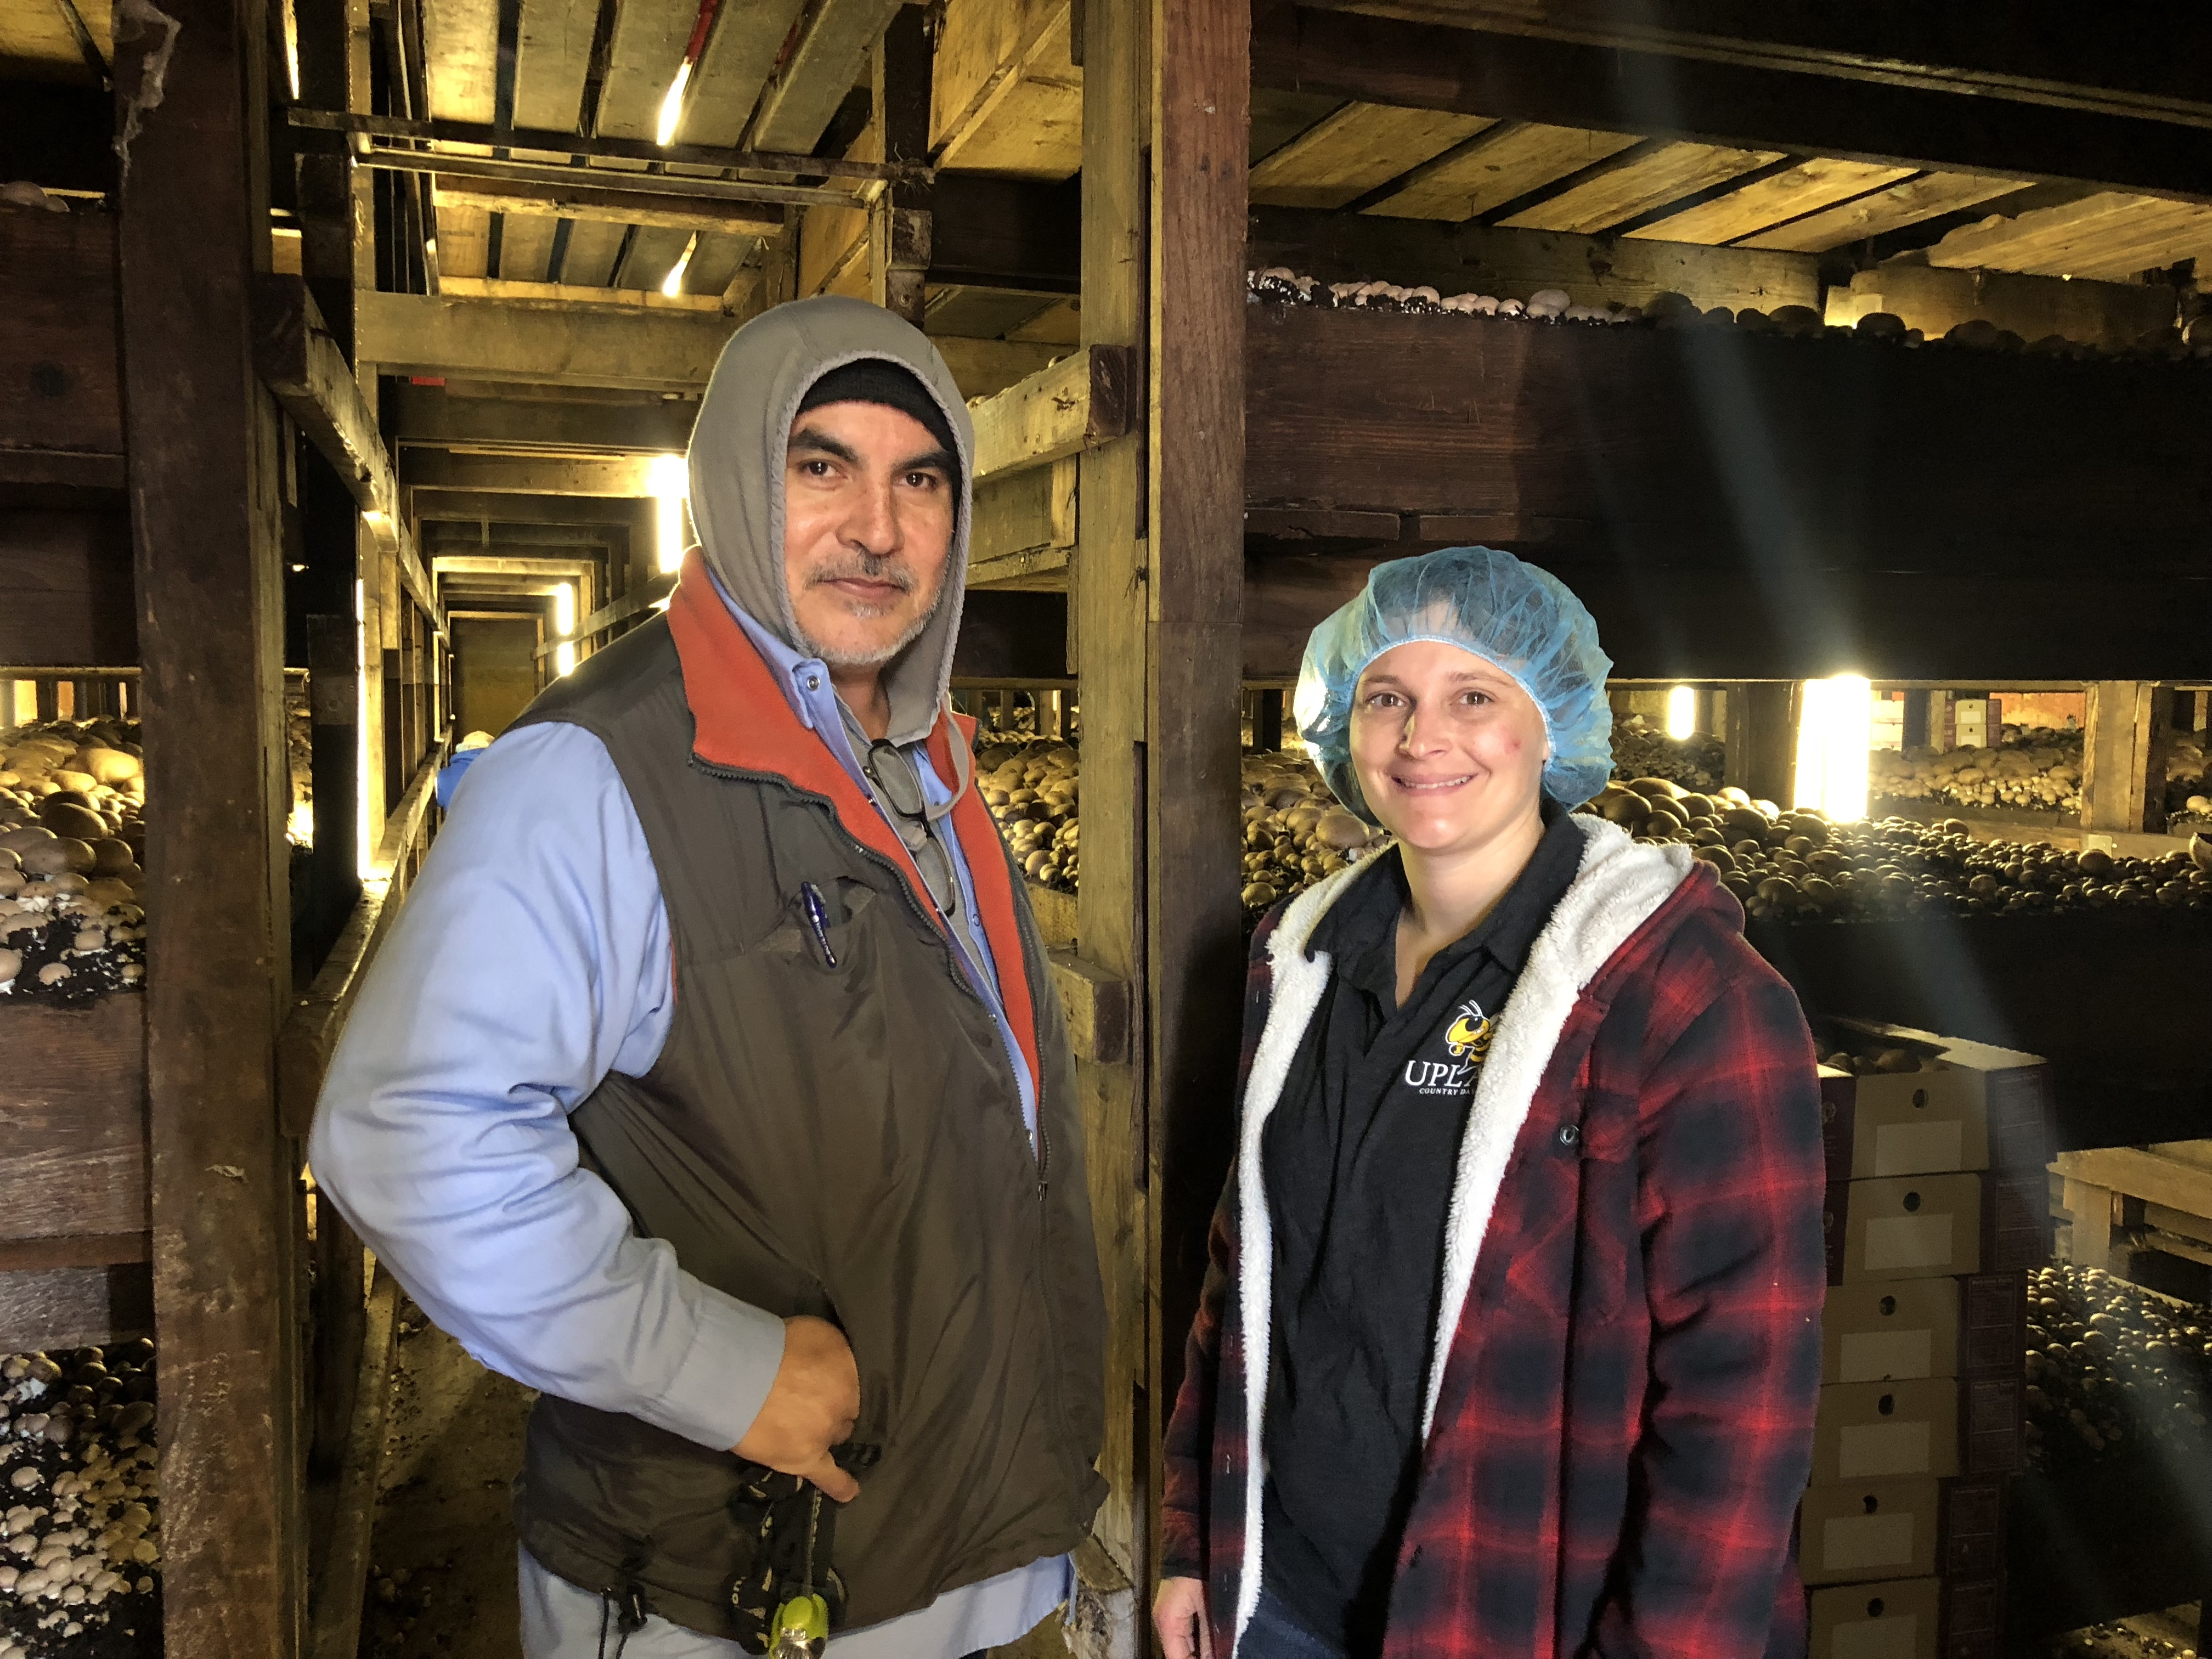 Alfredo Bedolla, a Mexican immigrant who has worked at Mother Earth Organic Mushrooms 16 years, and Meghan Klotzbach, a sixth generation farmer at Mother Earth, pose in front of the long crates of mushrooms waiting to be picked.